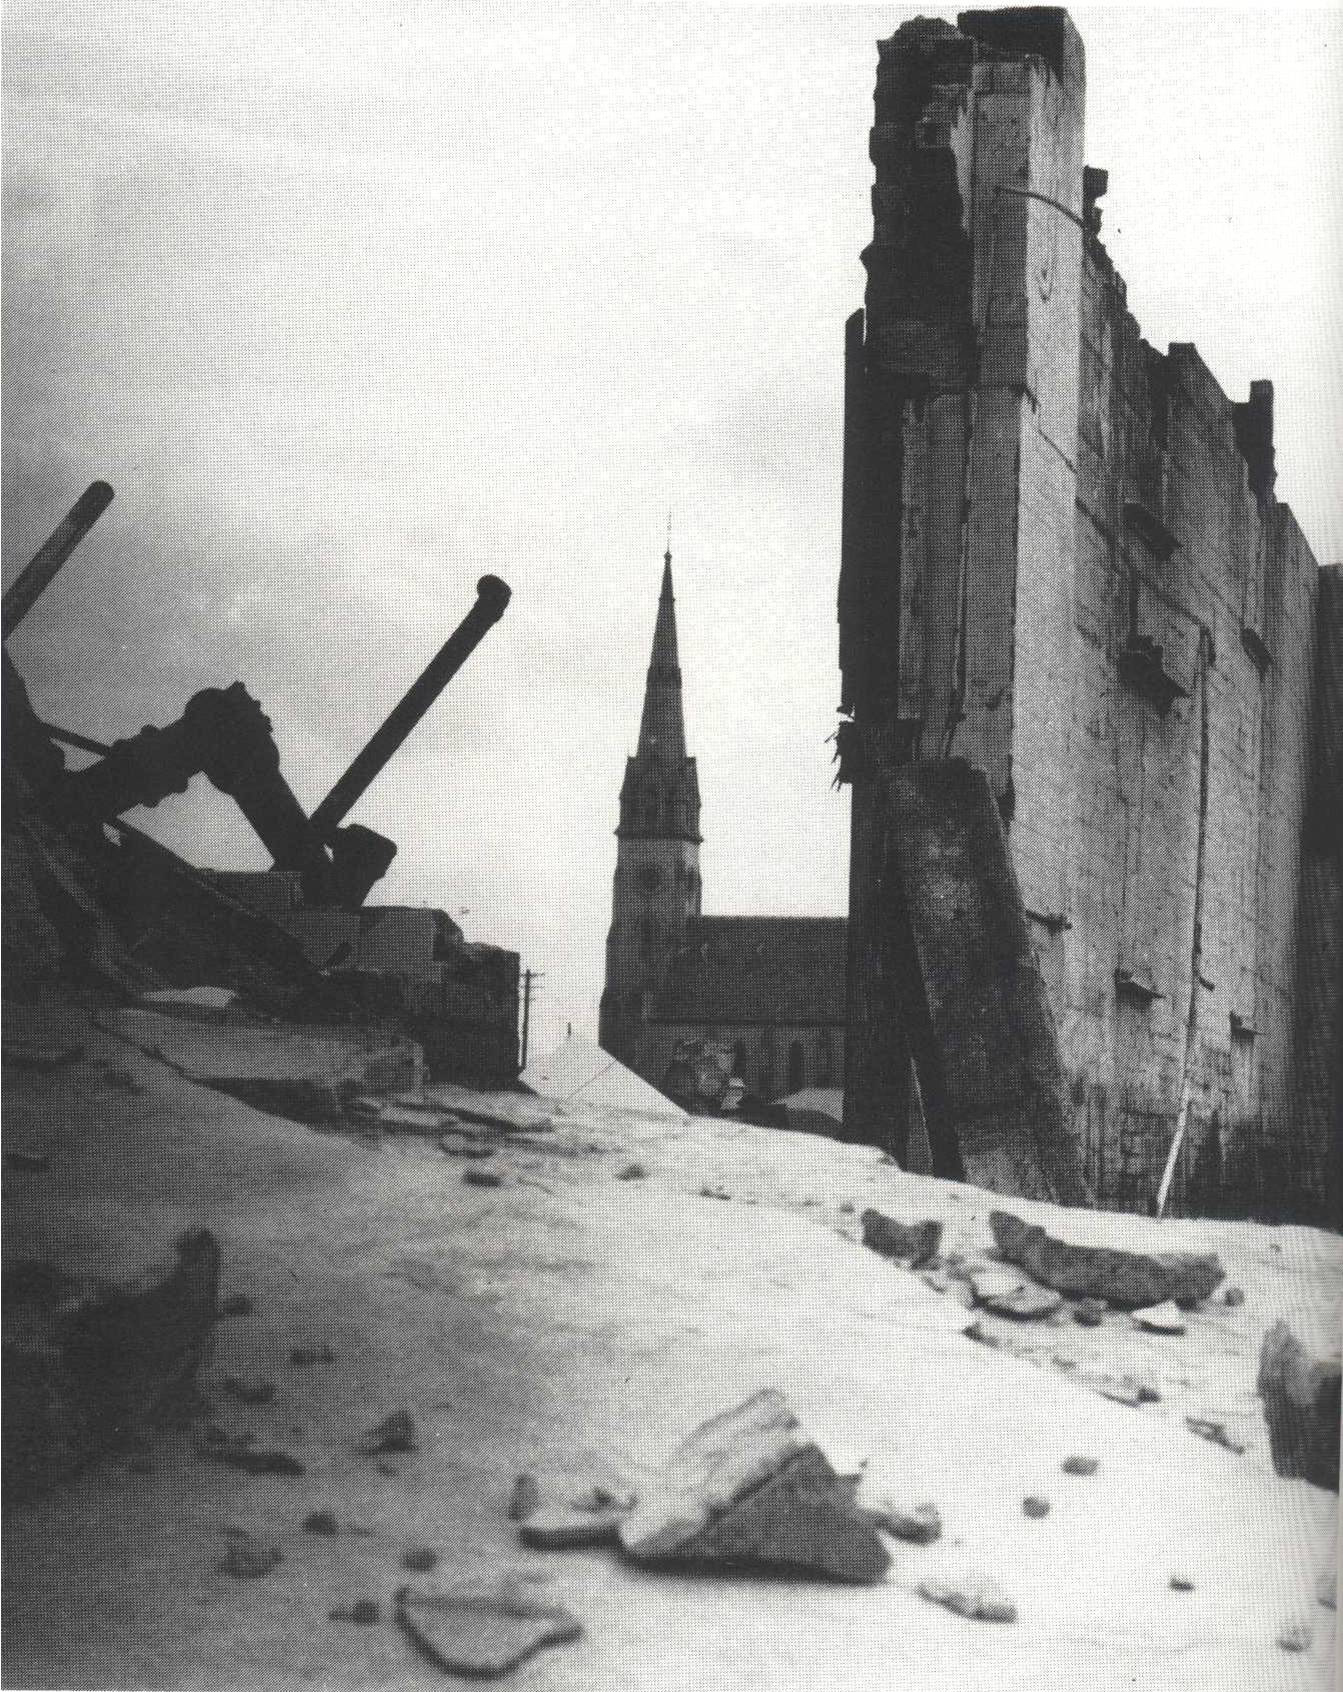 The last remnants of Varley's Darby Street facility during its demolition in 1965.